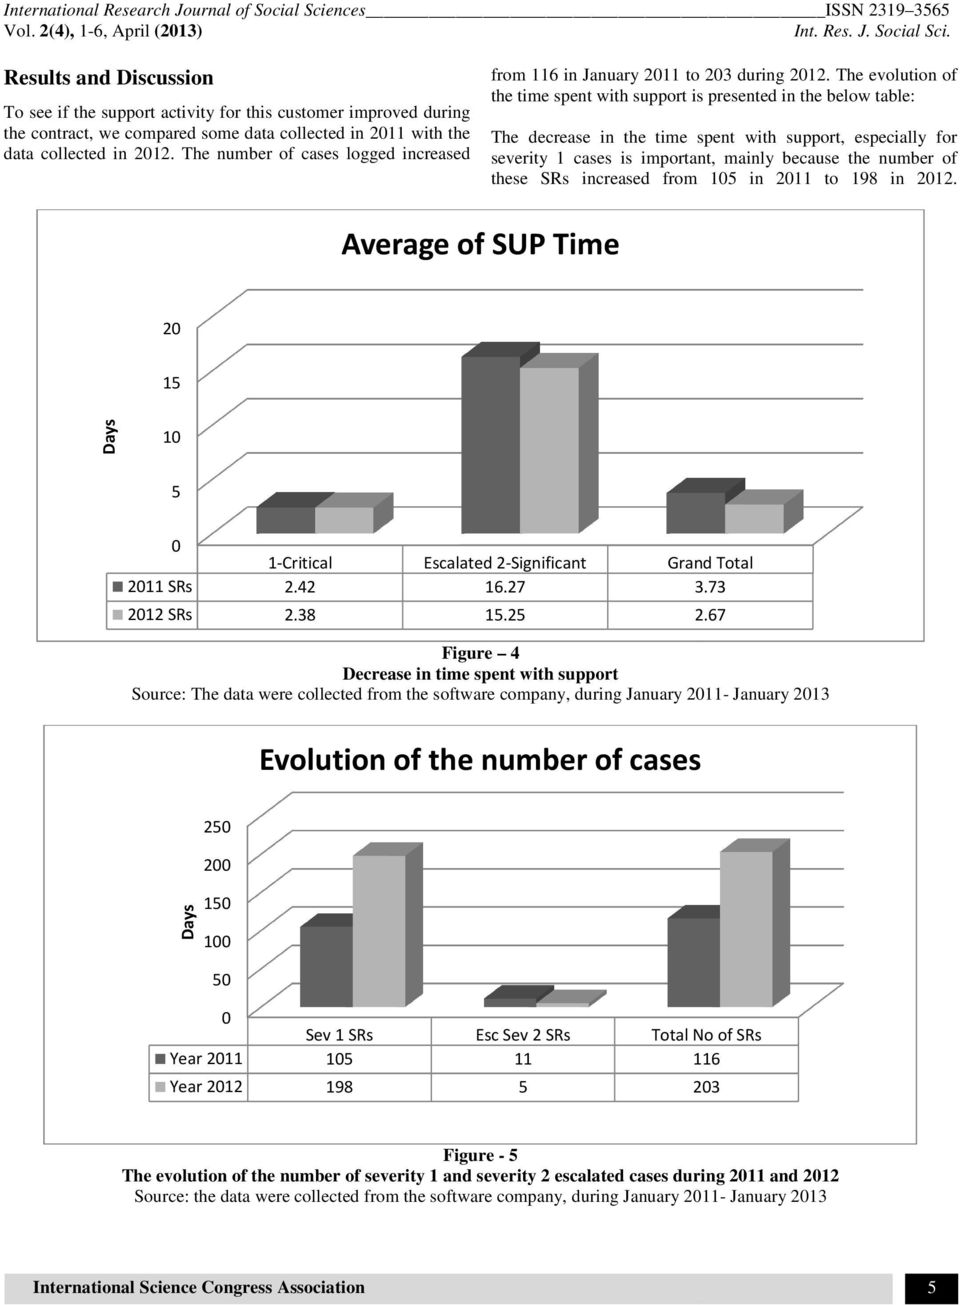 The evolution of the time spent with support is presented in the below table: The decrease in the time spent with support, especially for severity 1 cases is important, mainly because the number of